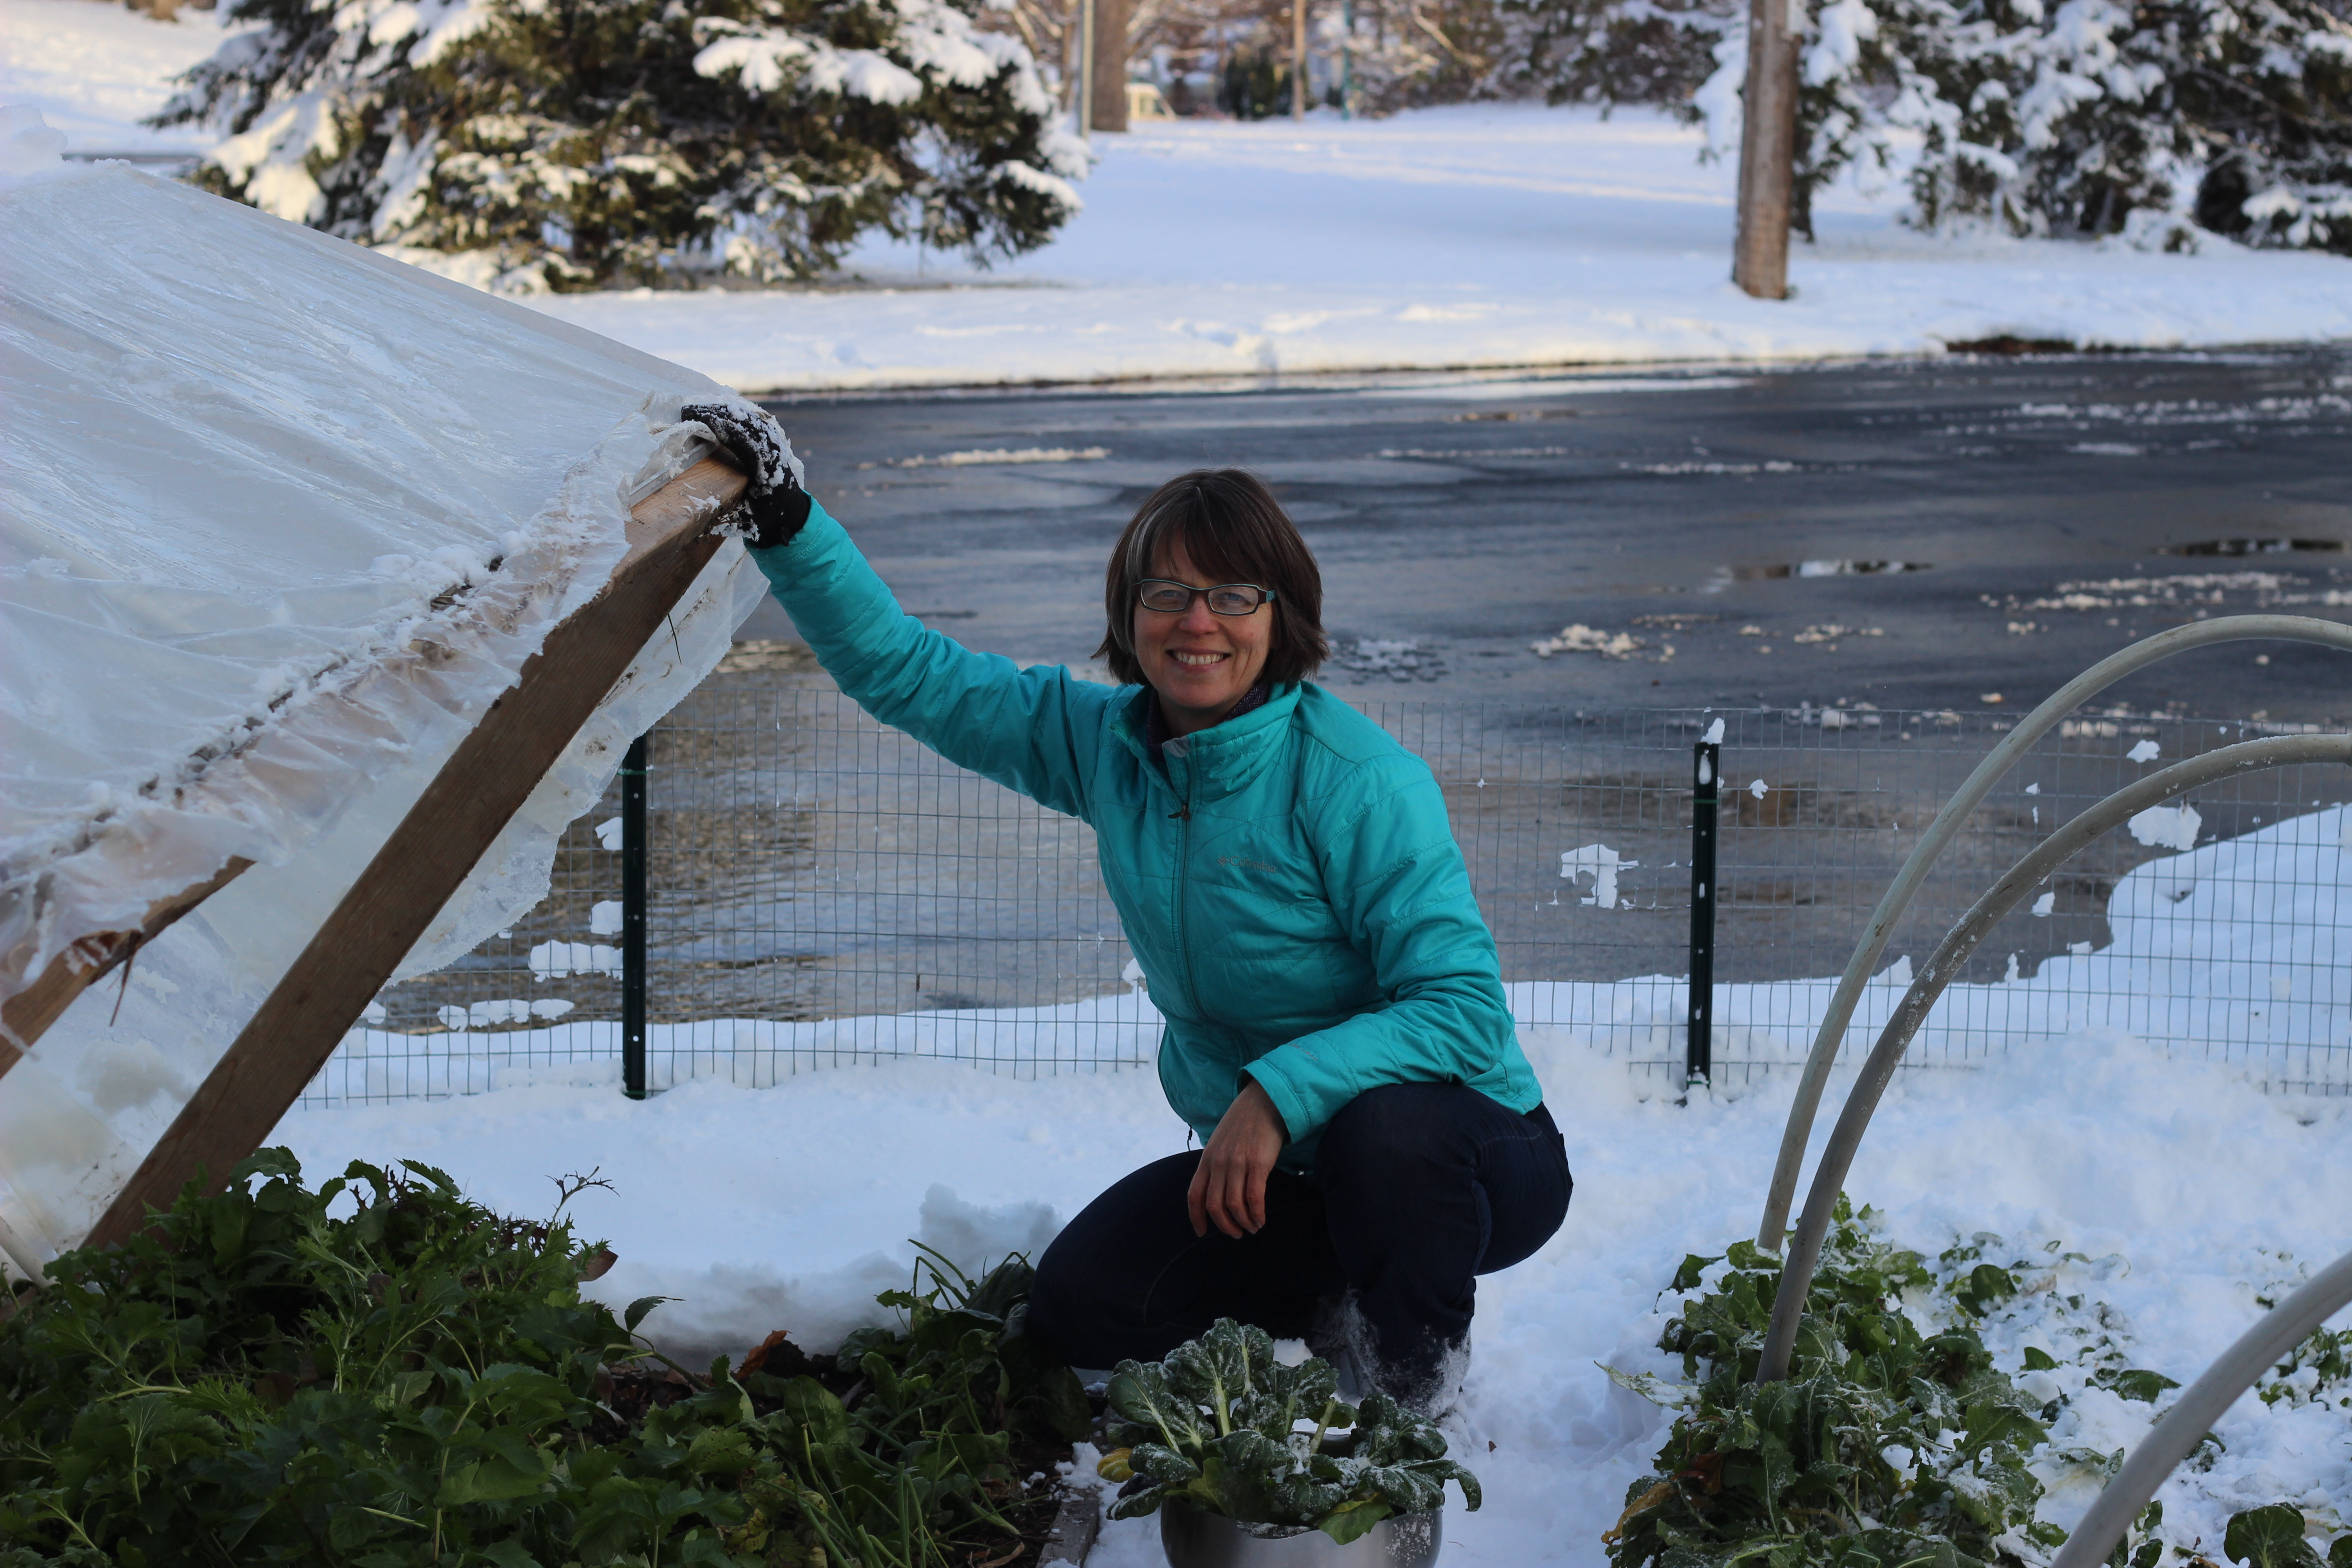 gardening in the snow